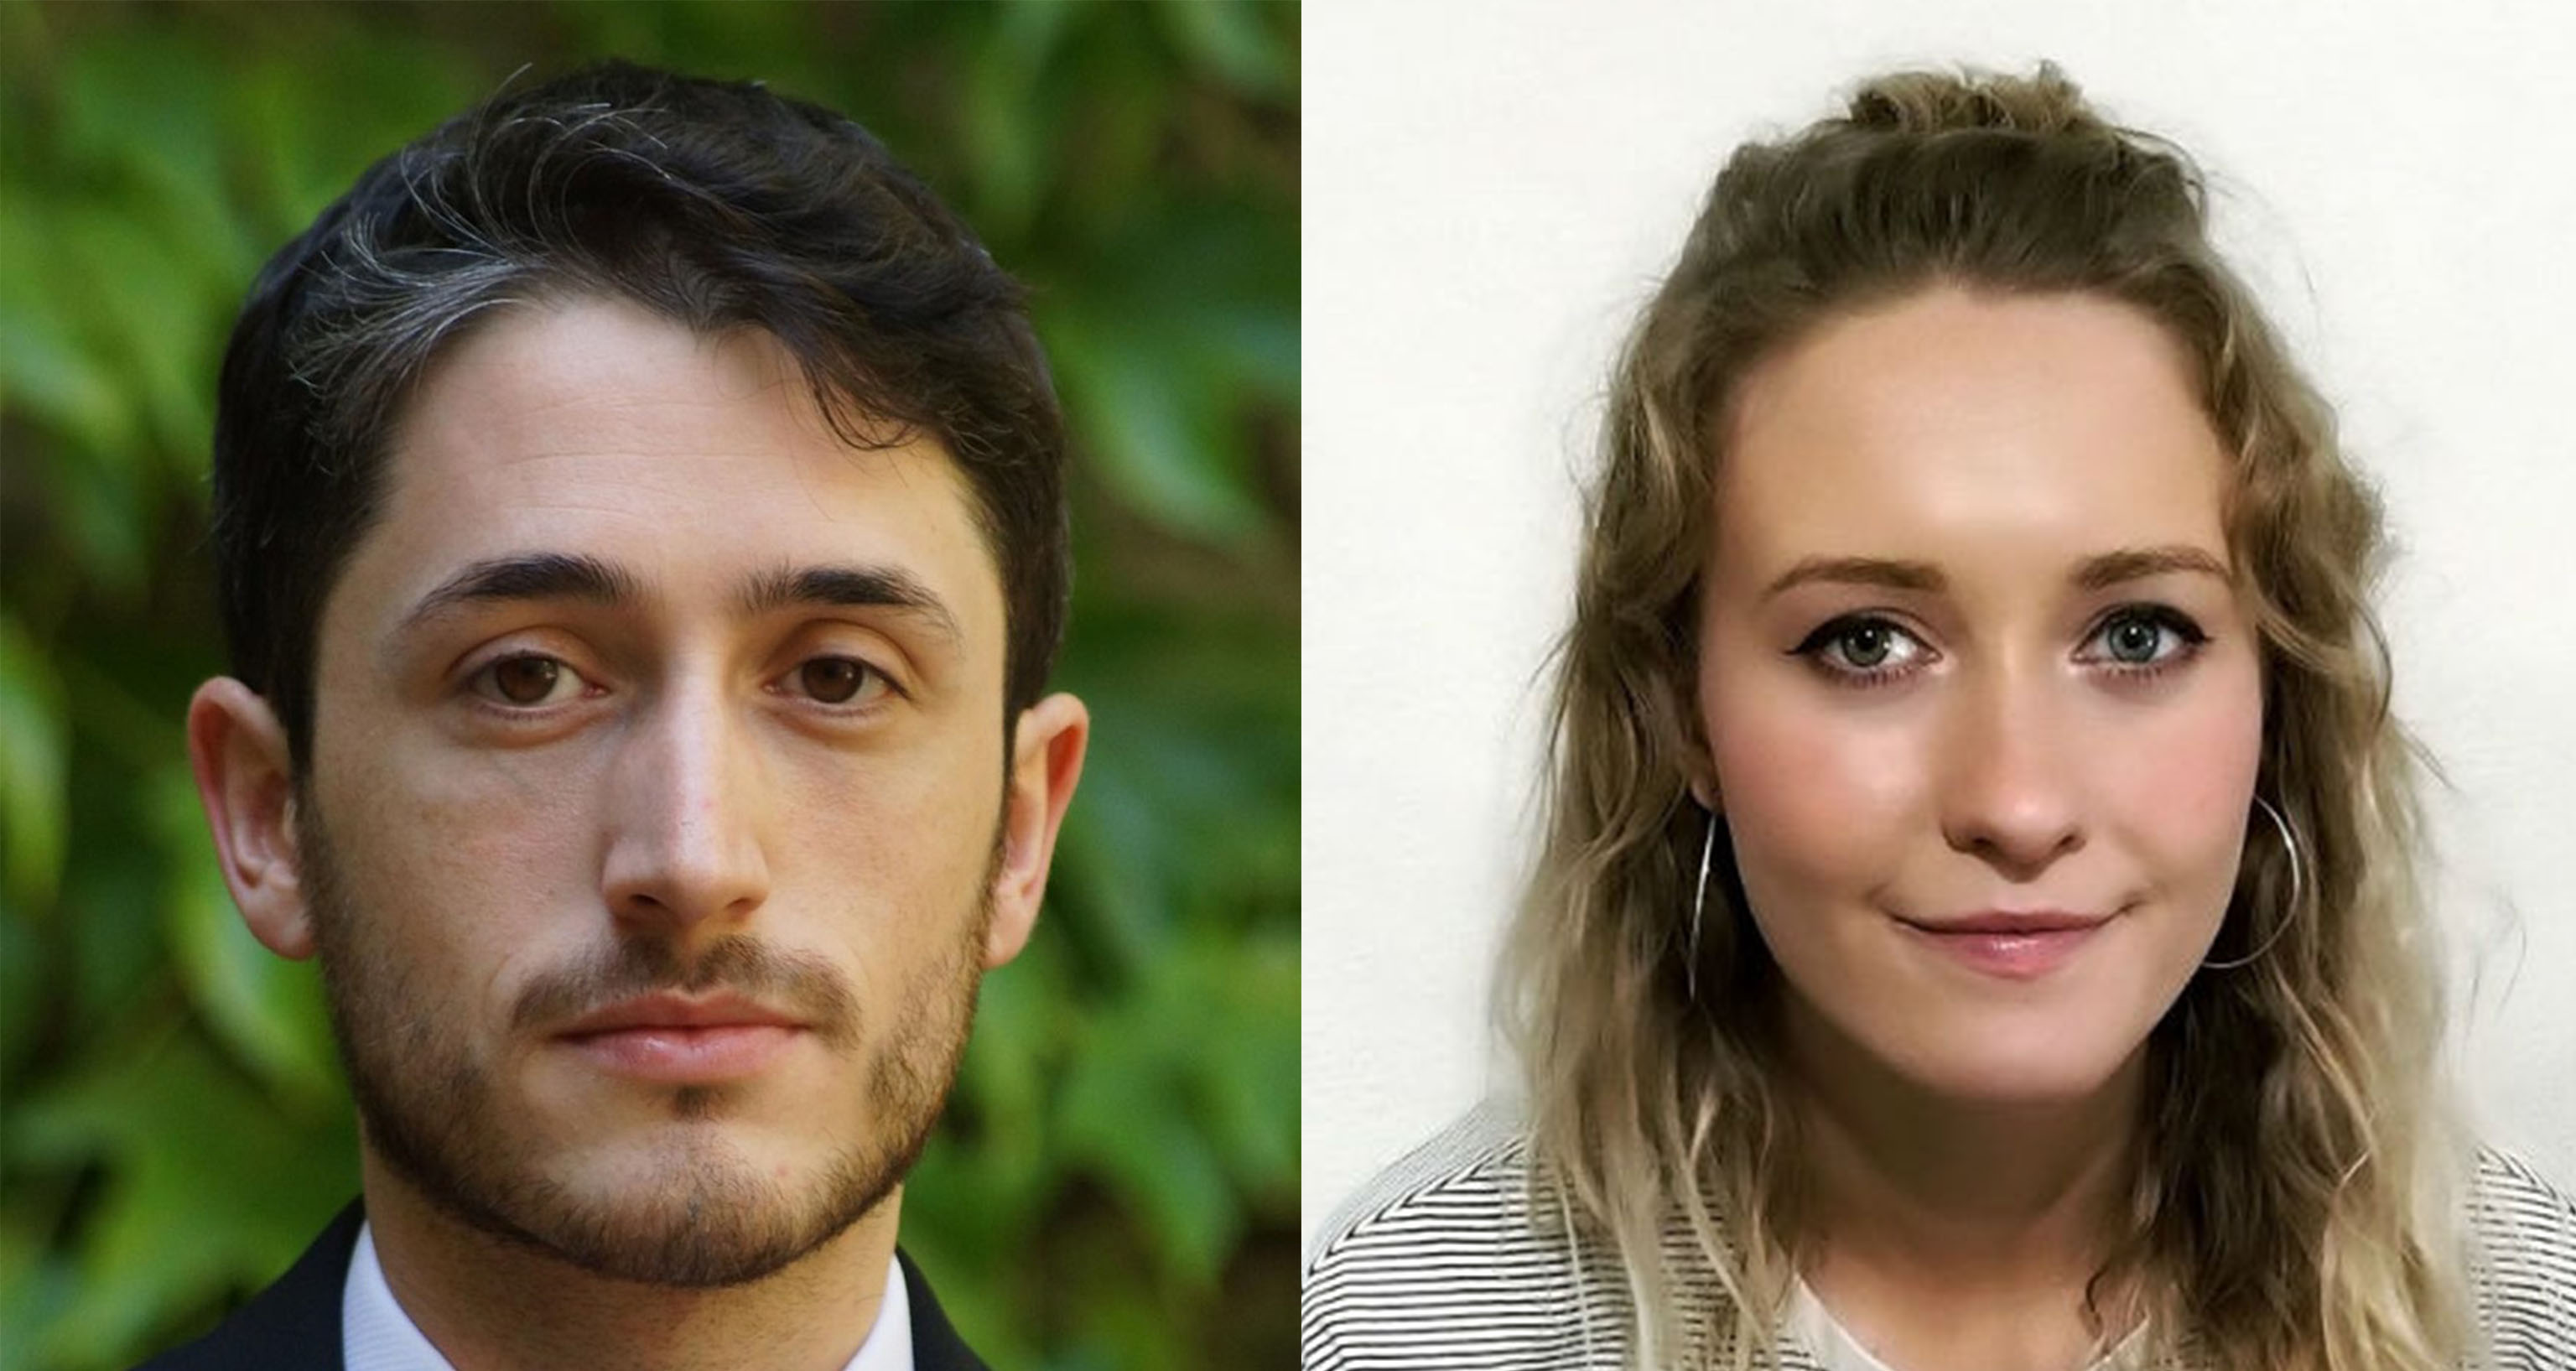 Gabriel Monteros and Molly Underwood, the winners of the 2018 Manchester Writing Competition